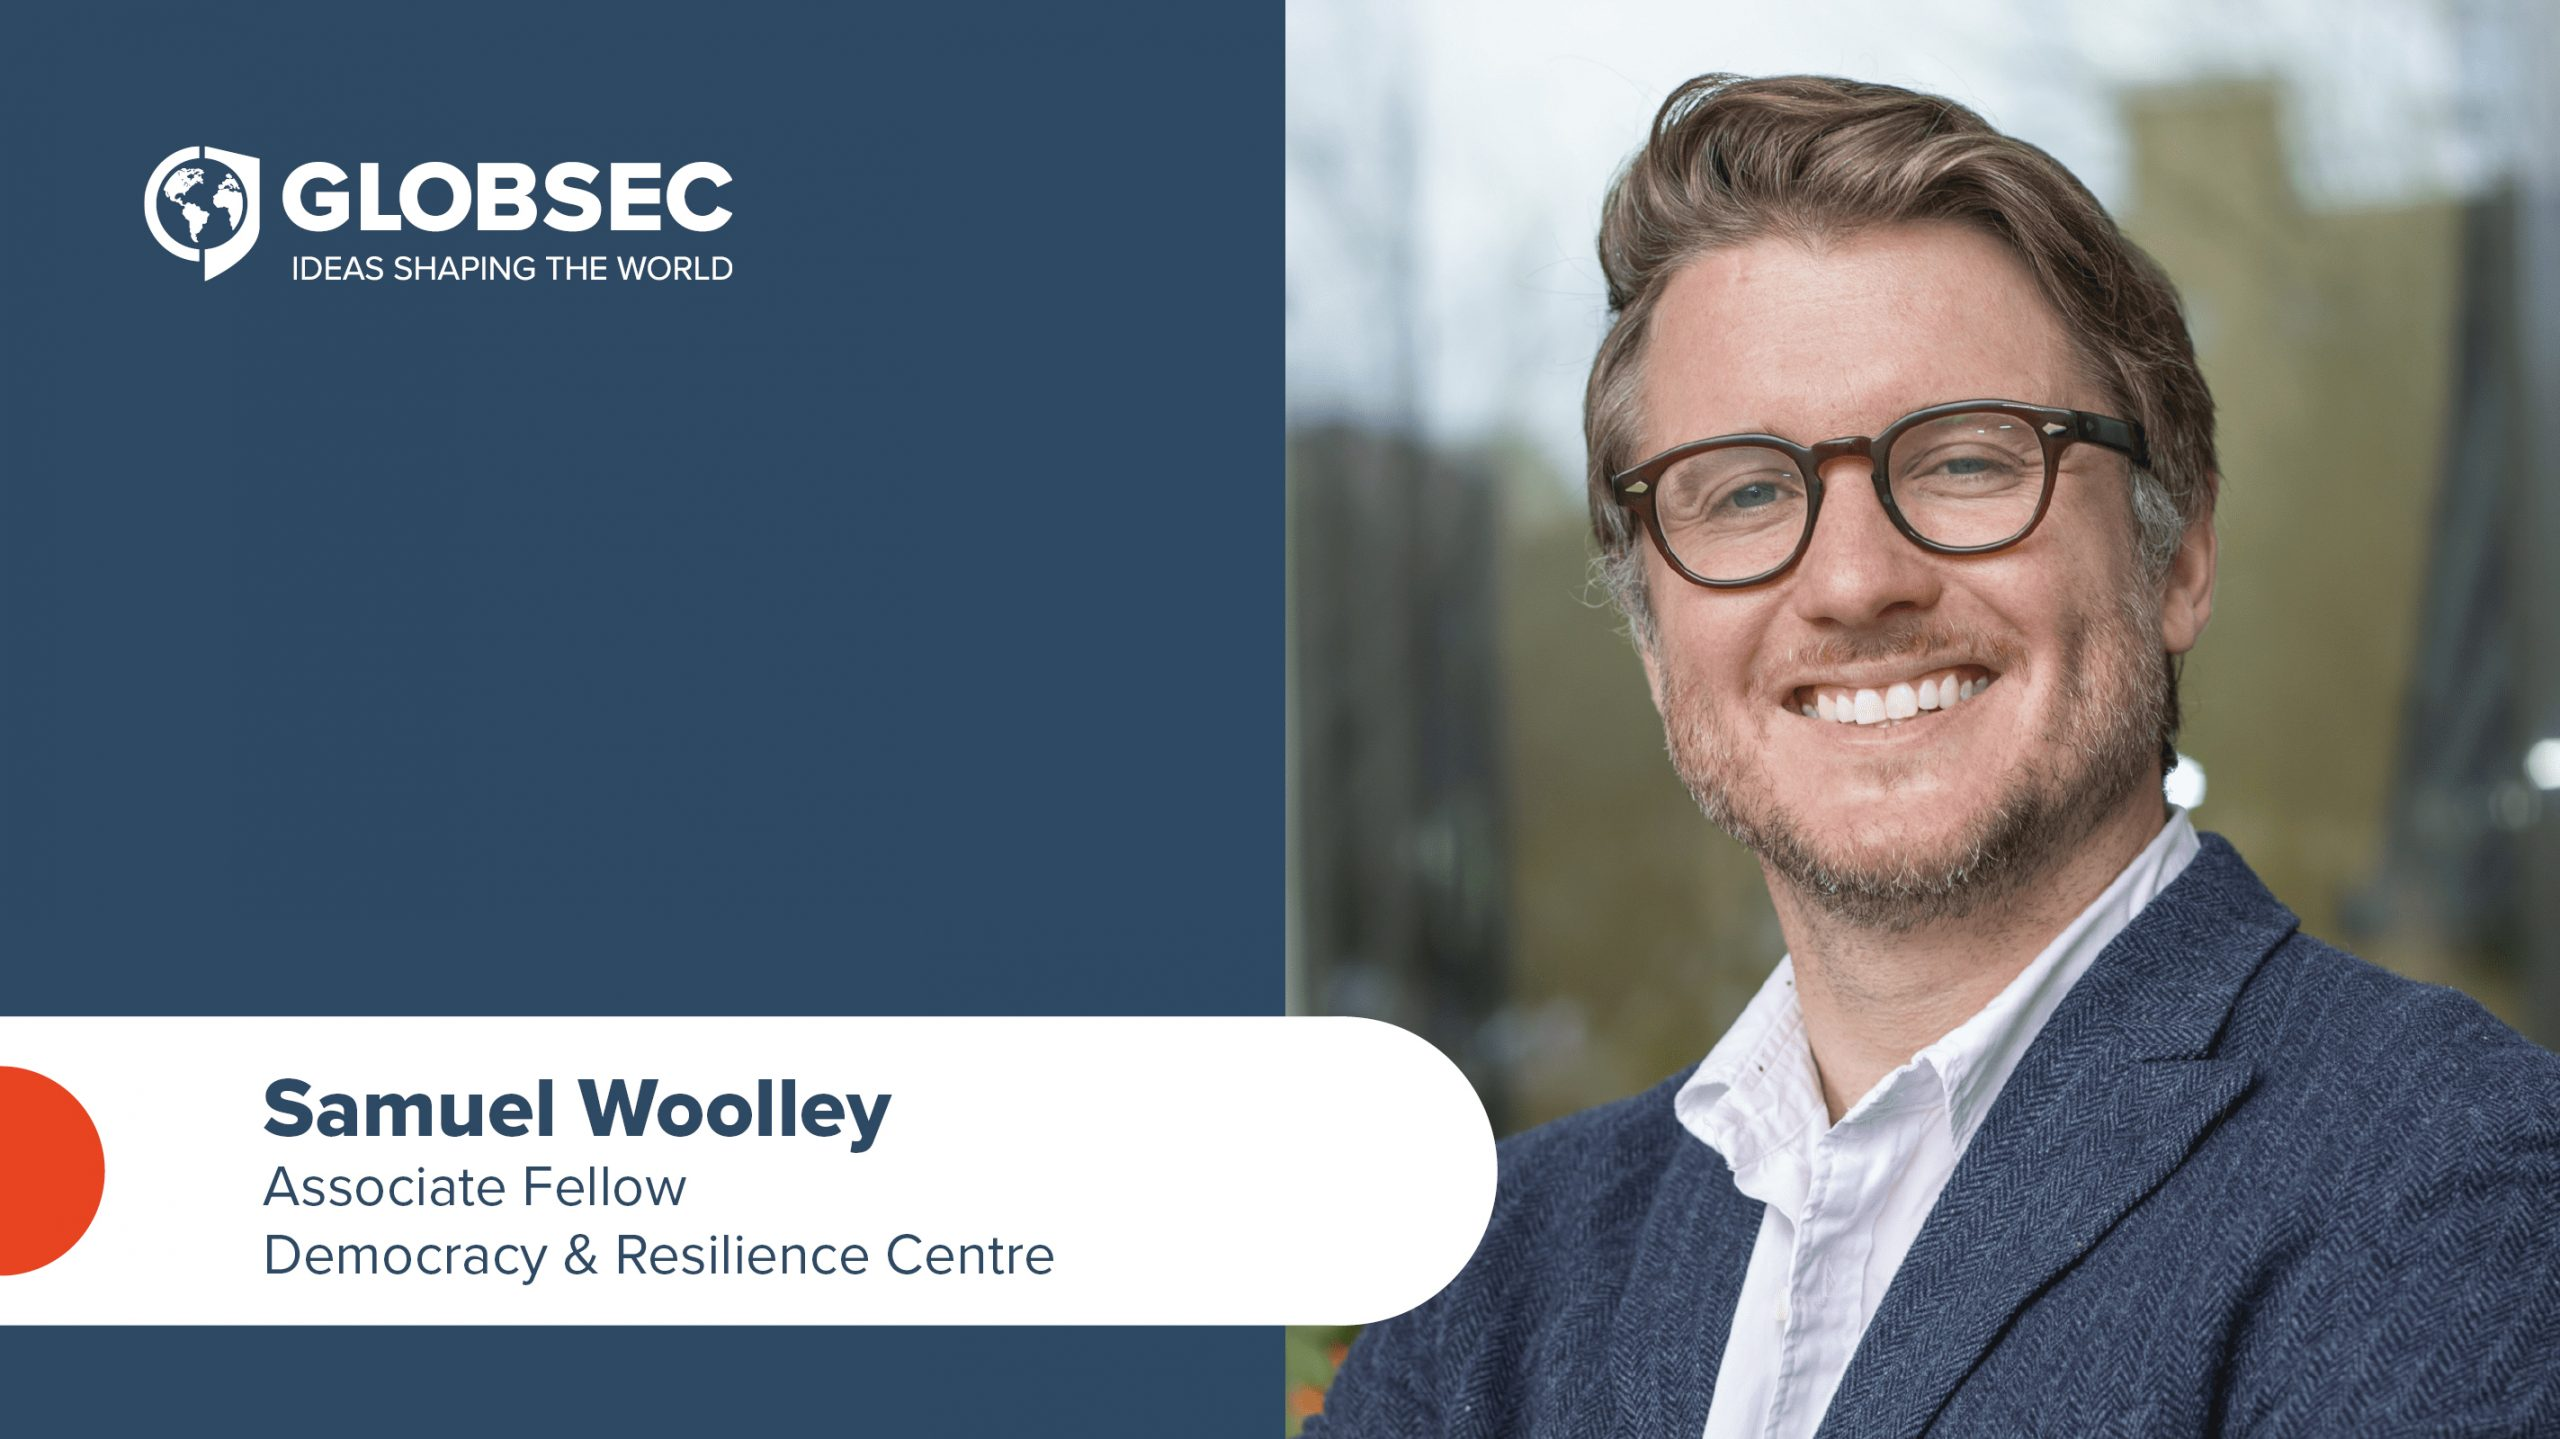 Samuel Woolley joins GLOBSEC as Associate Fellow at Democracy & Resilience Centre